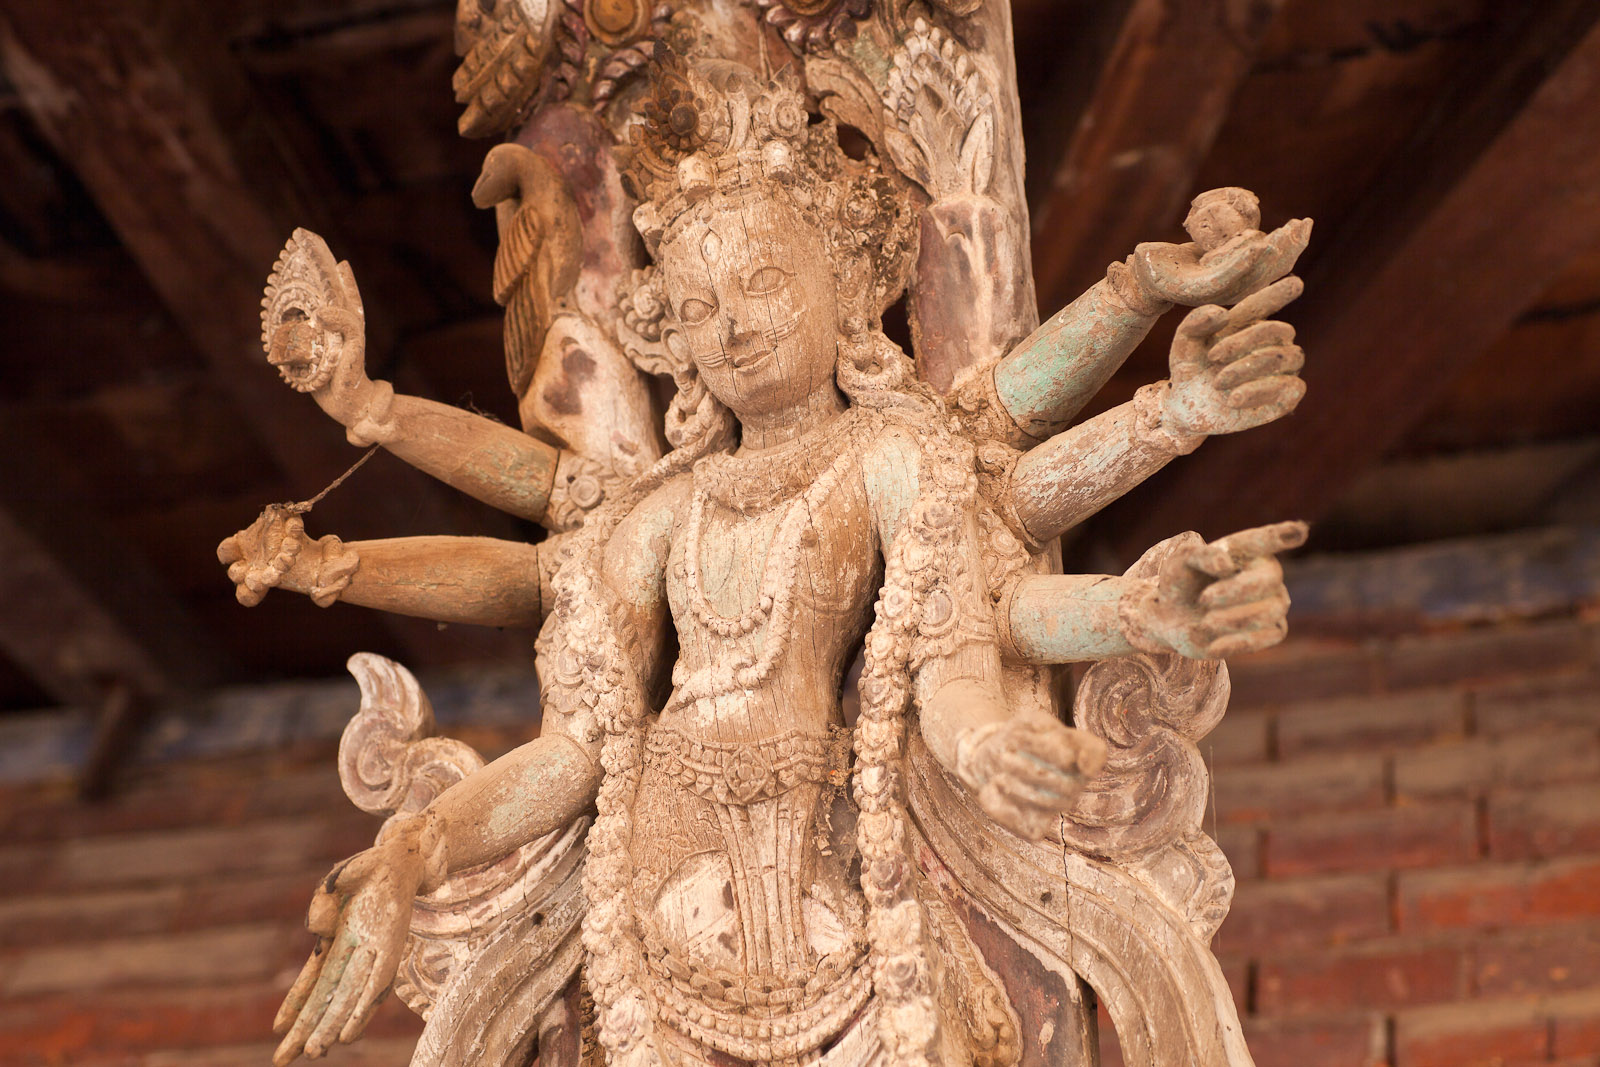 File:Wooden Carving on Roof Strut (5243833519).jpg - Wikimedia Commons